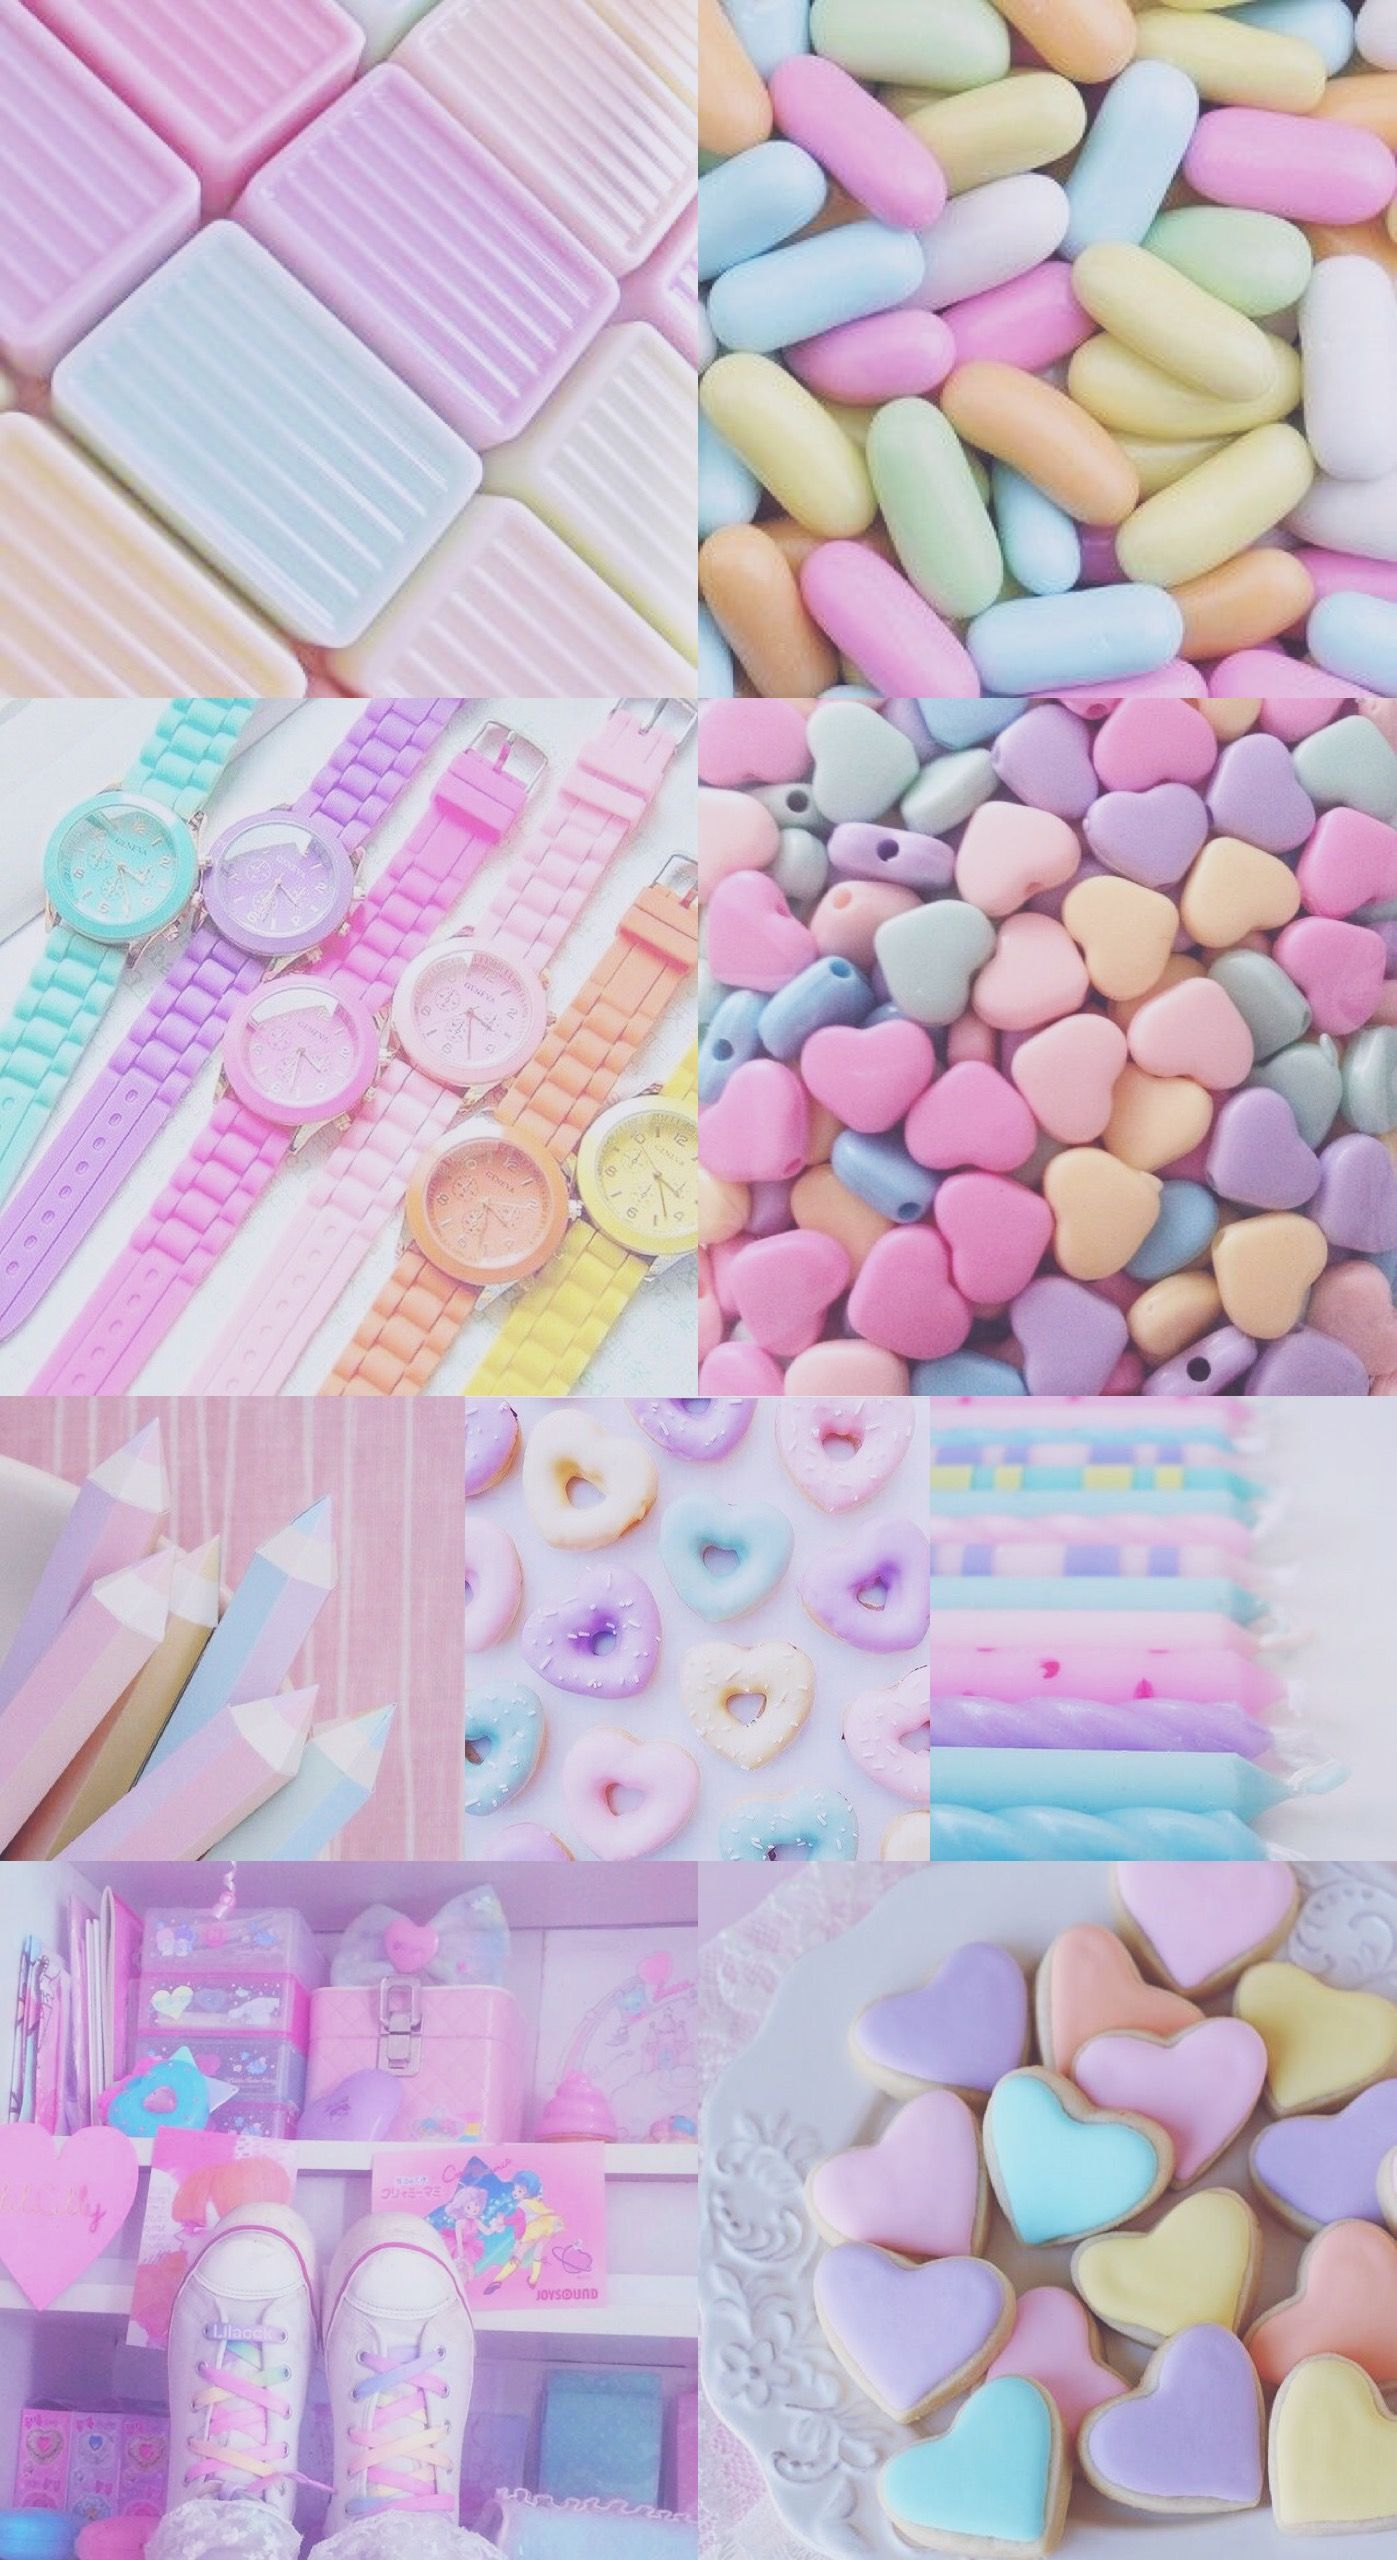 Wallpaper Background Hd Pastel Rainbow Pink Blue Purple